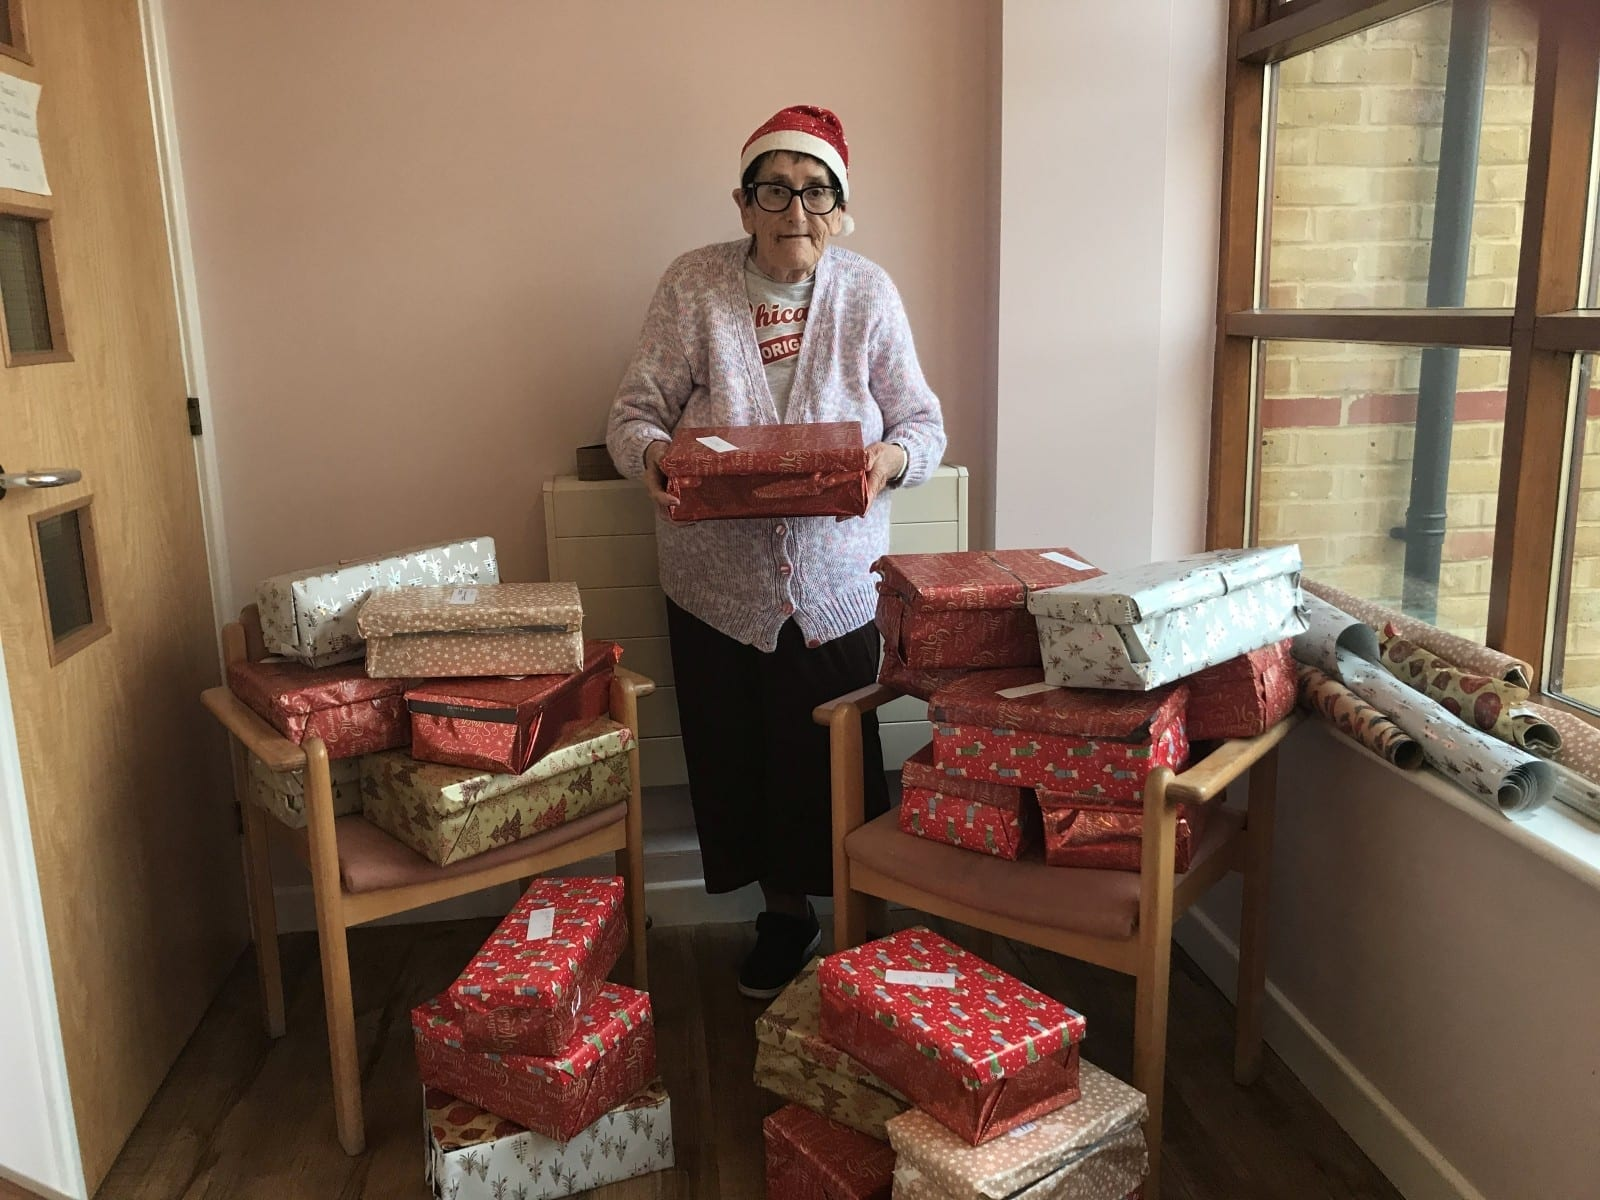 MOTHER CHRISTMAS - Grandmother Dubbed 'Real-Life Santa' - Because She Spends All Year Preparing More Than 500 Shoeboxes Full Of Presents For Those In Need